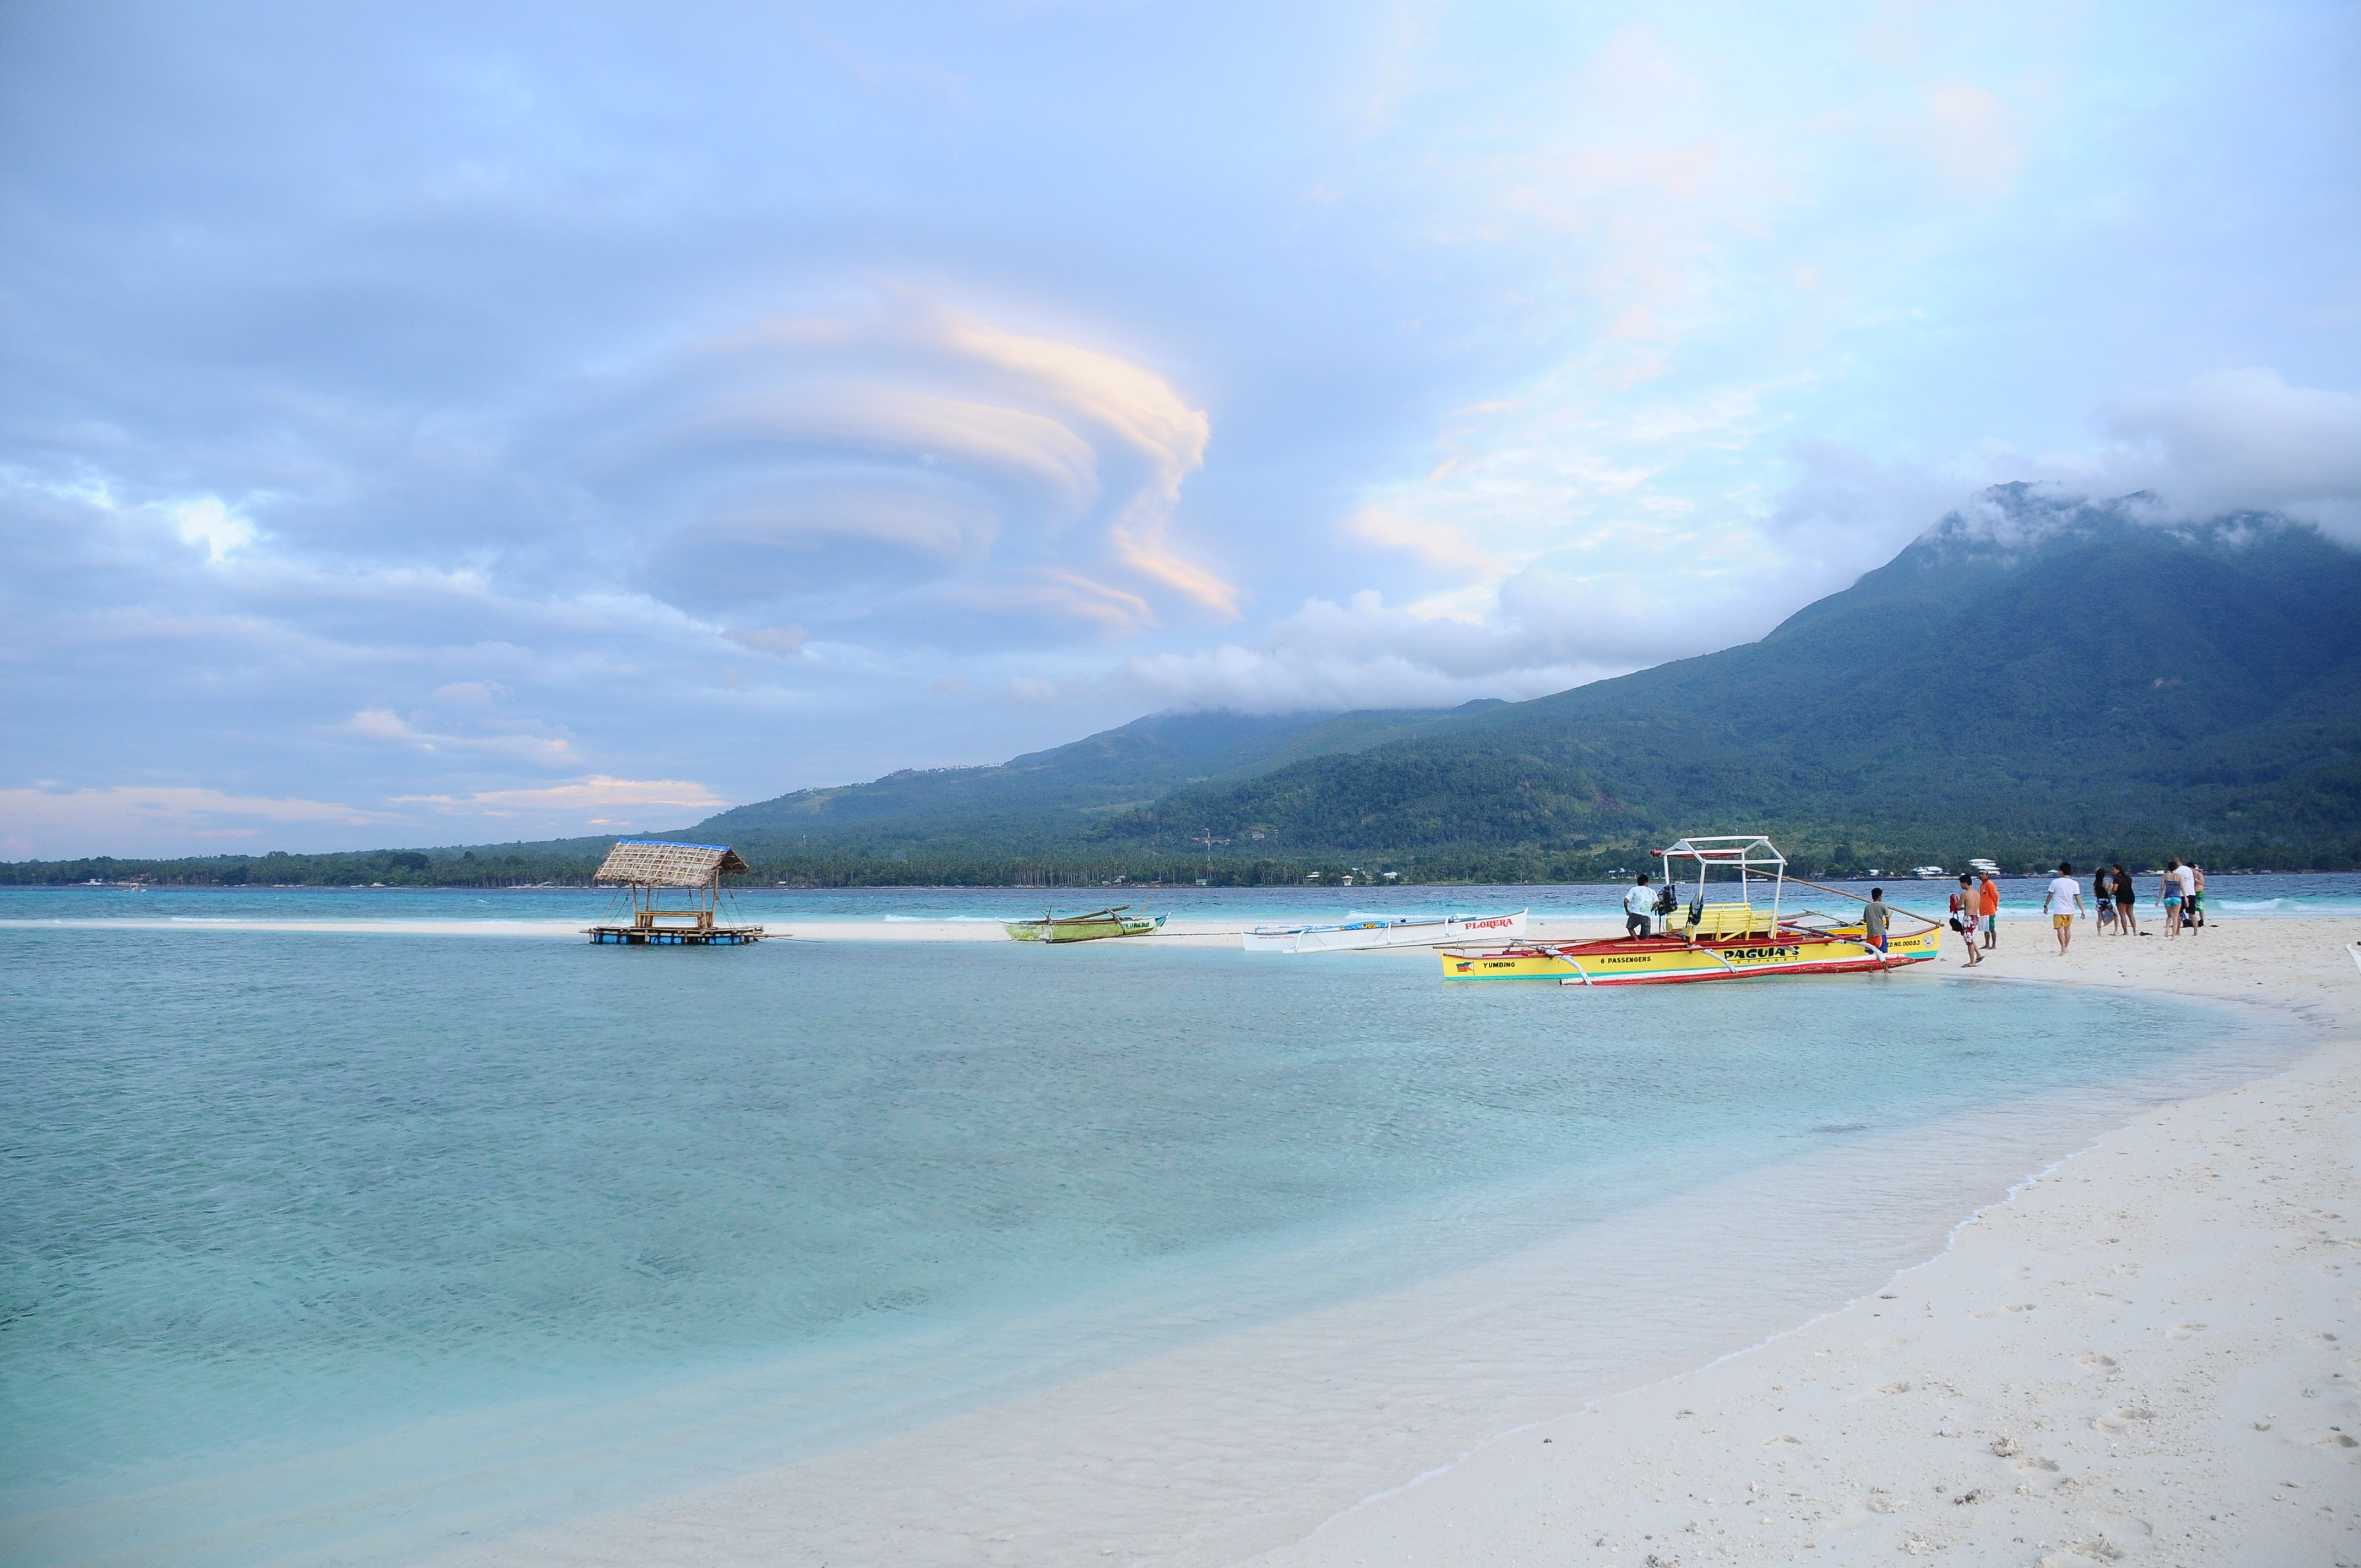 Pin by KATIE THYER on PHILIPPINES | Philippines, Outdoor